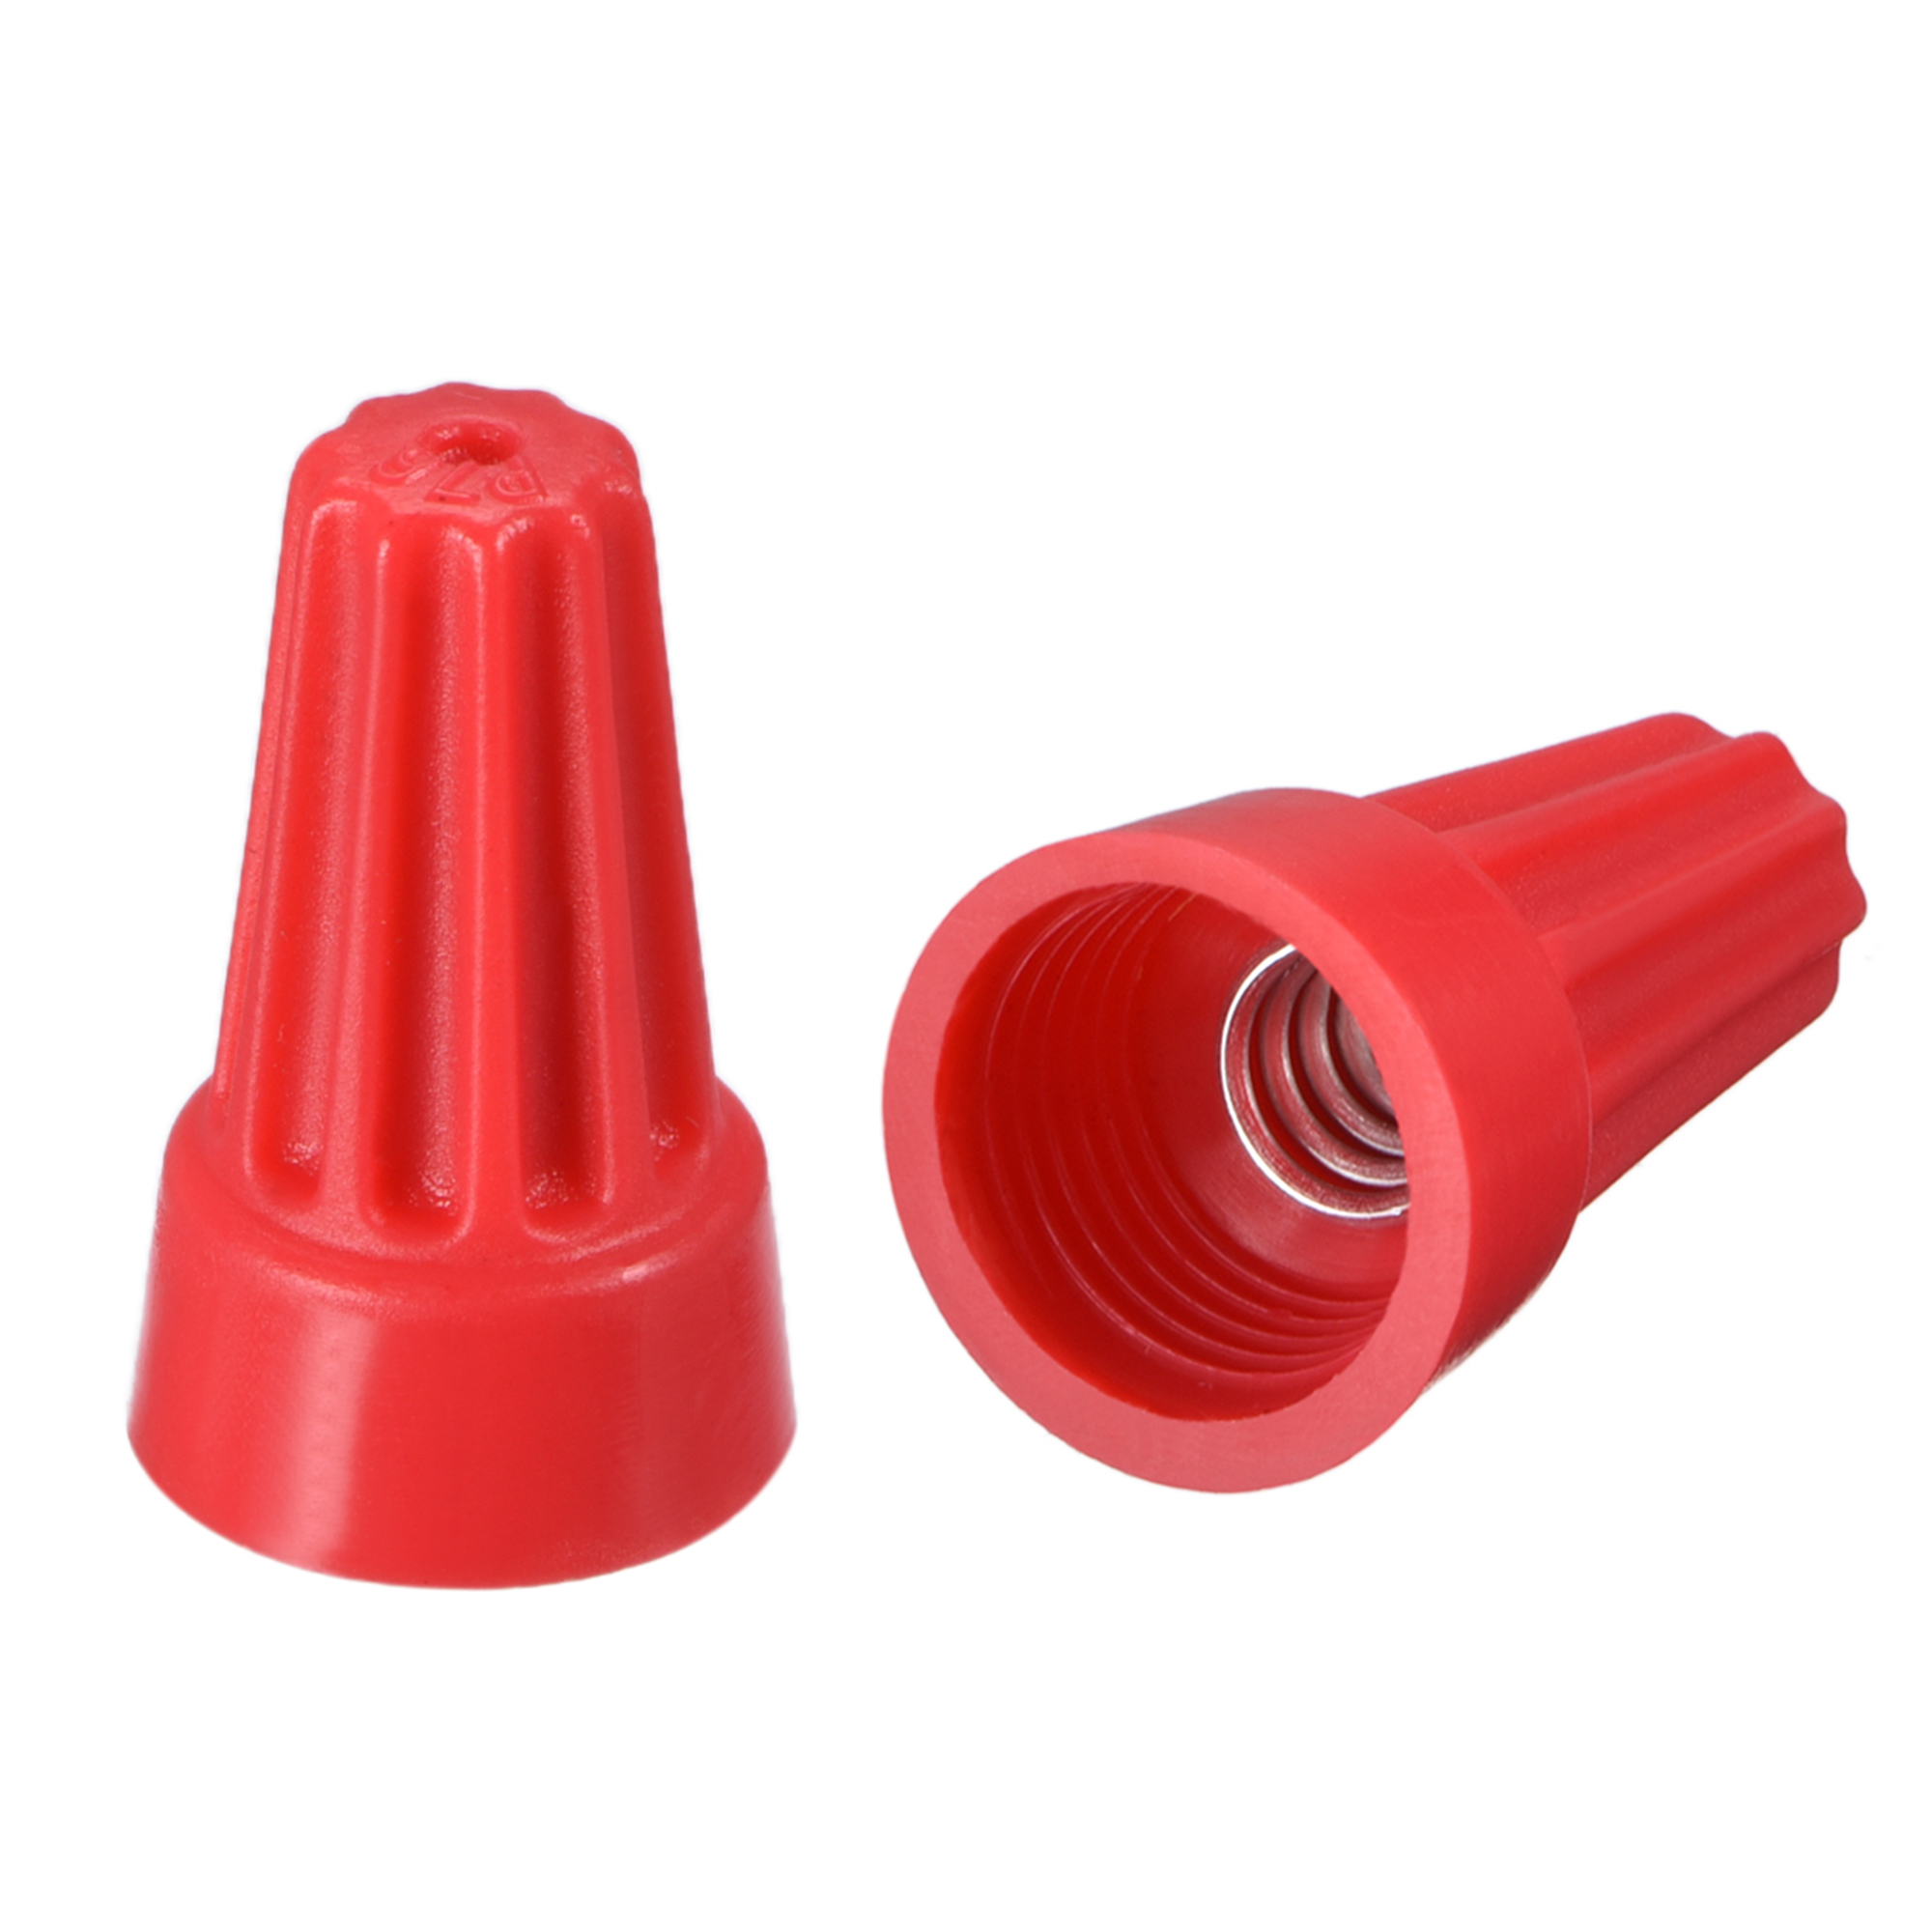 hight resolution of wire nuts electrical connectors twist nut caps screw terminals red wire nut connections close up wire nut cover